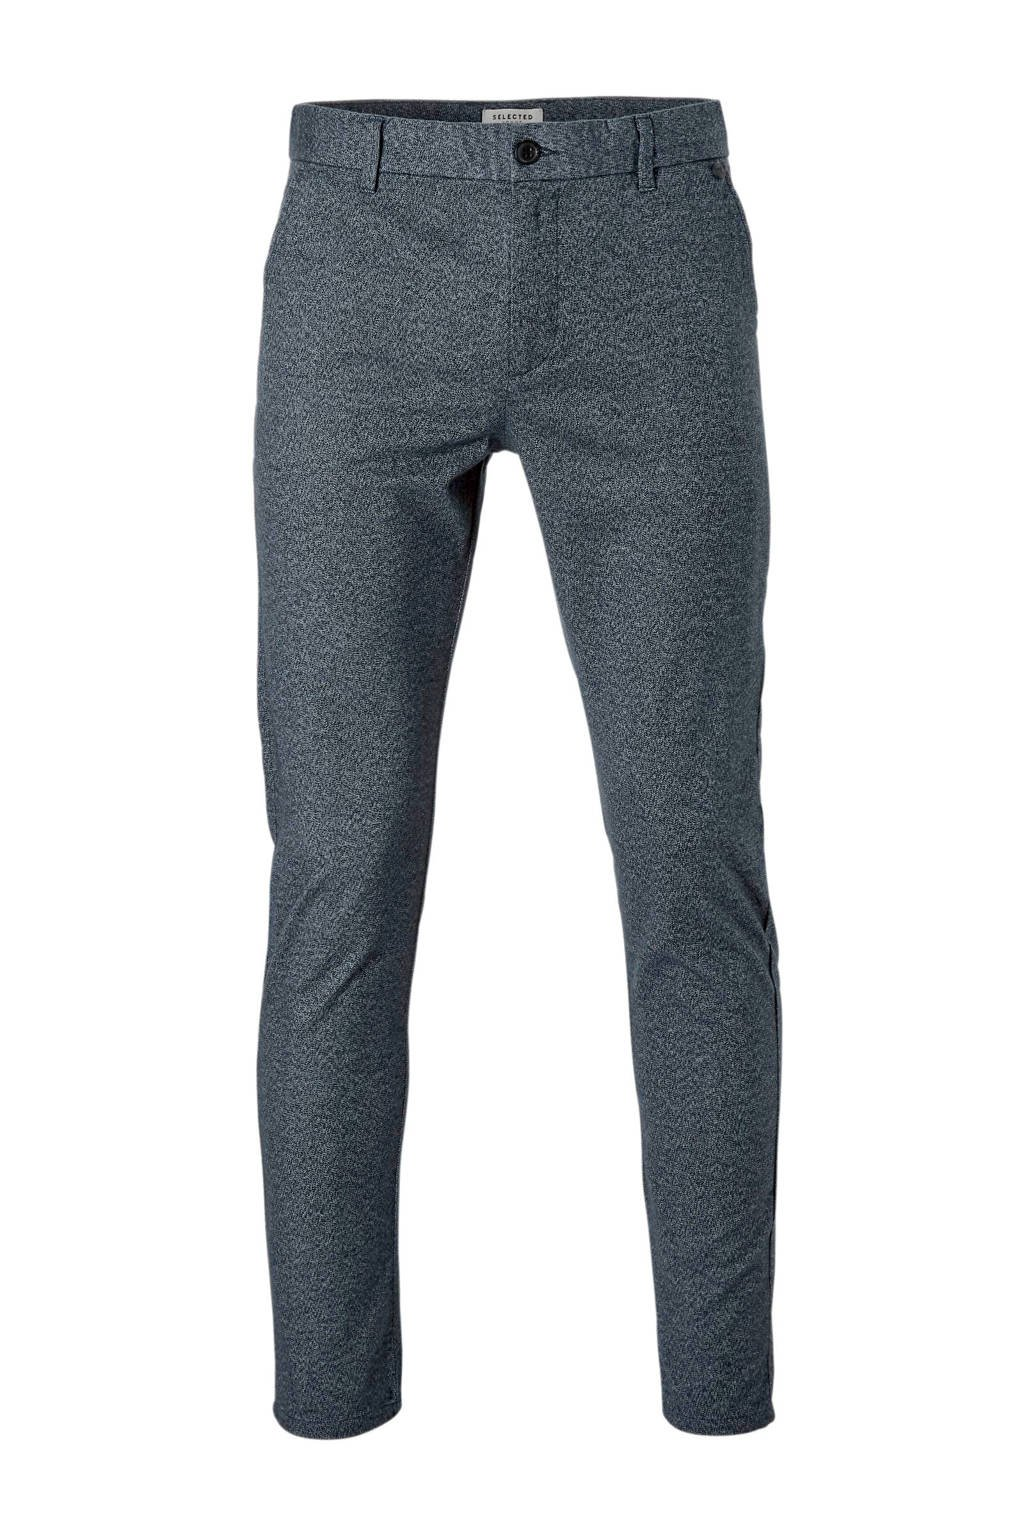 SELECTED HOMME slim fit chino Arval, Grijsblauw